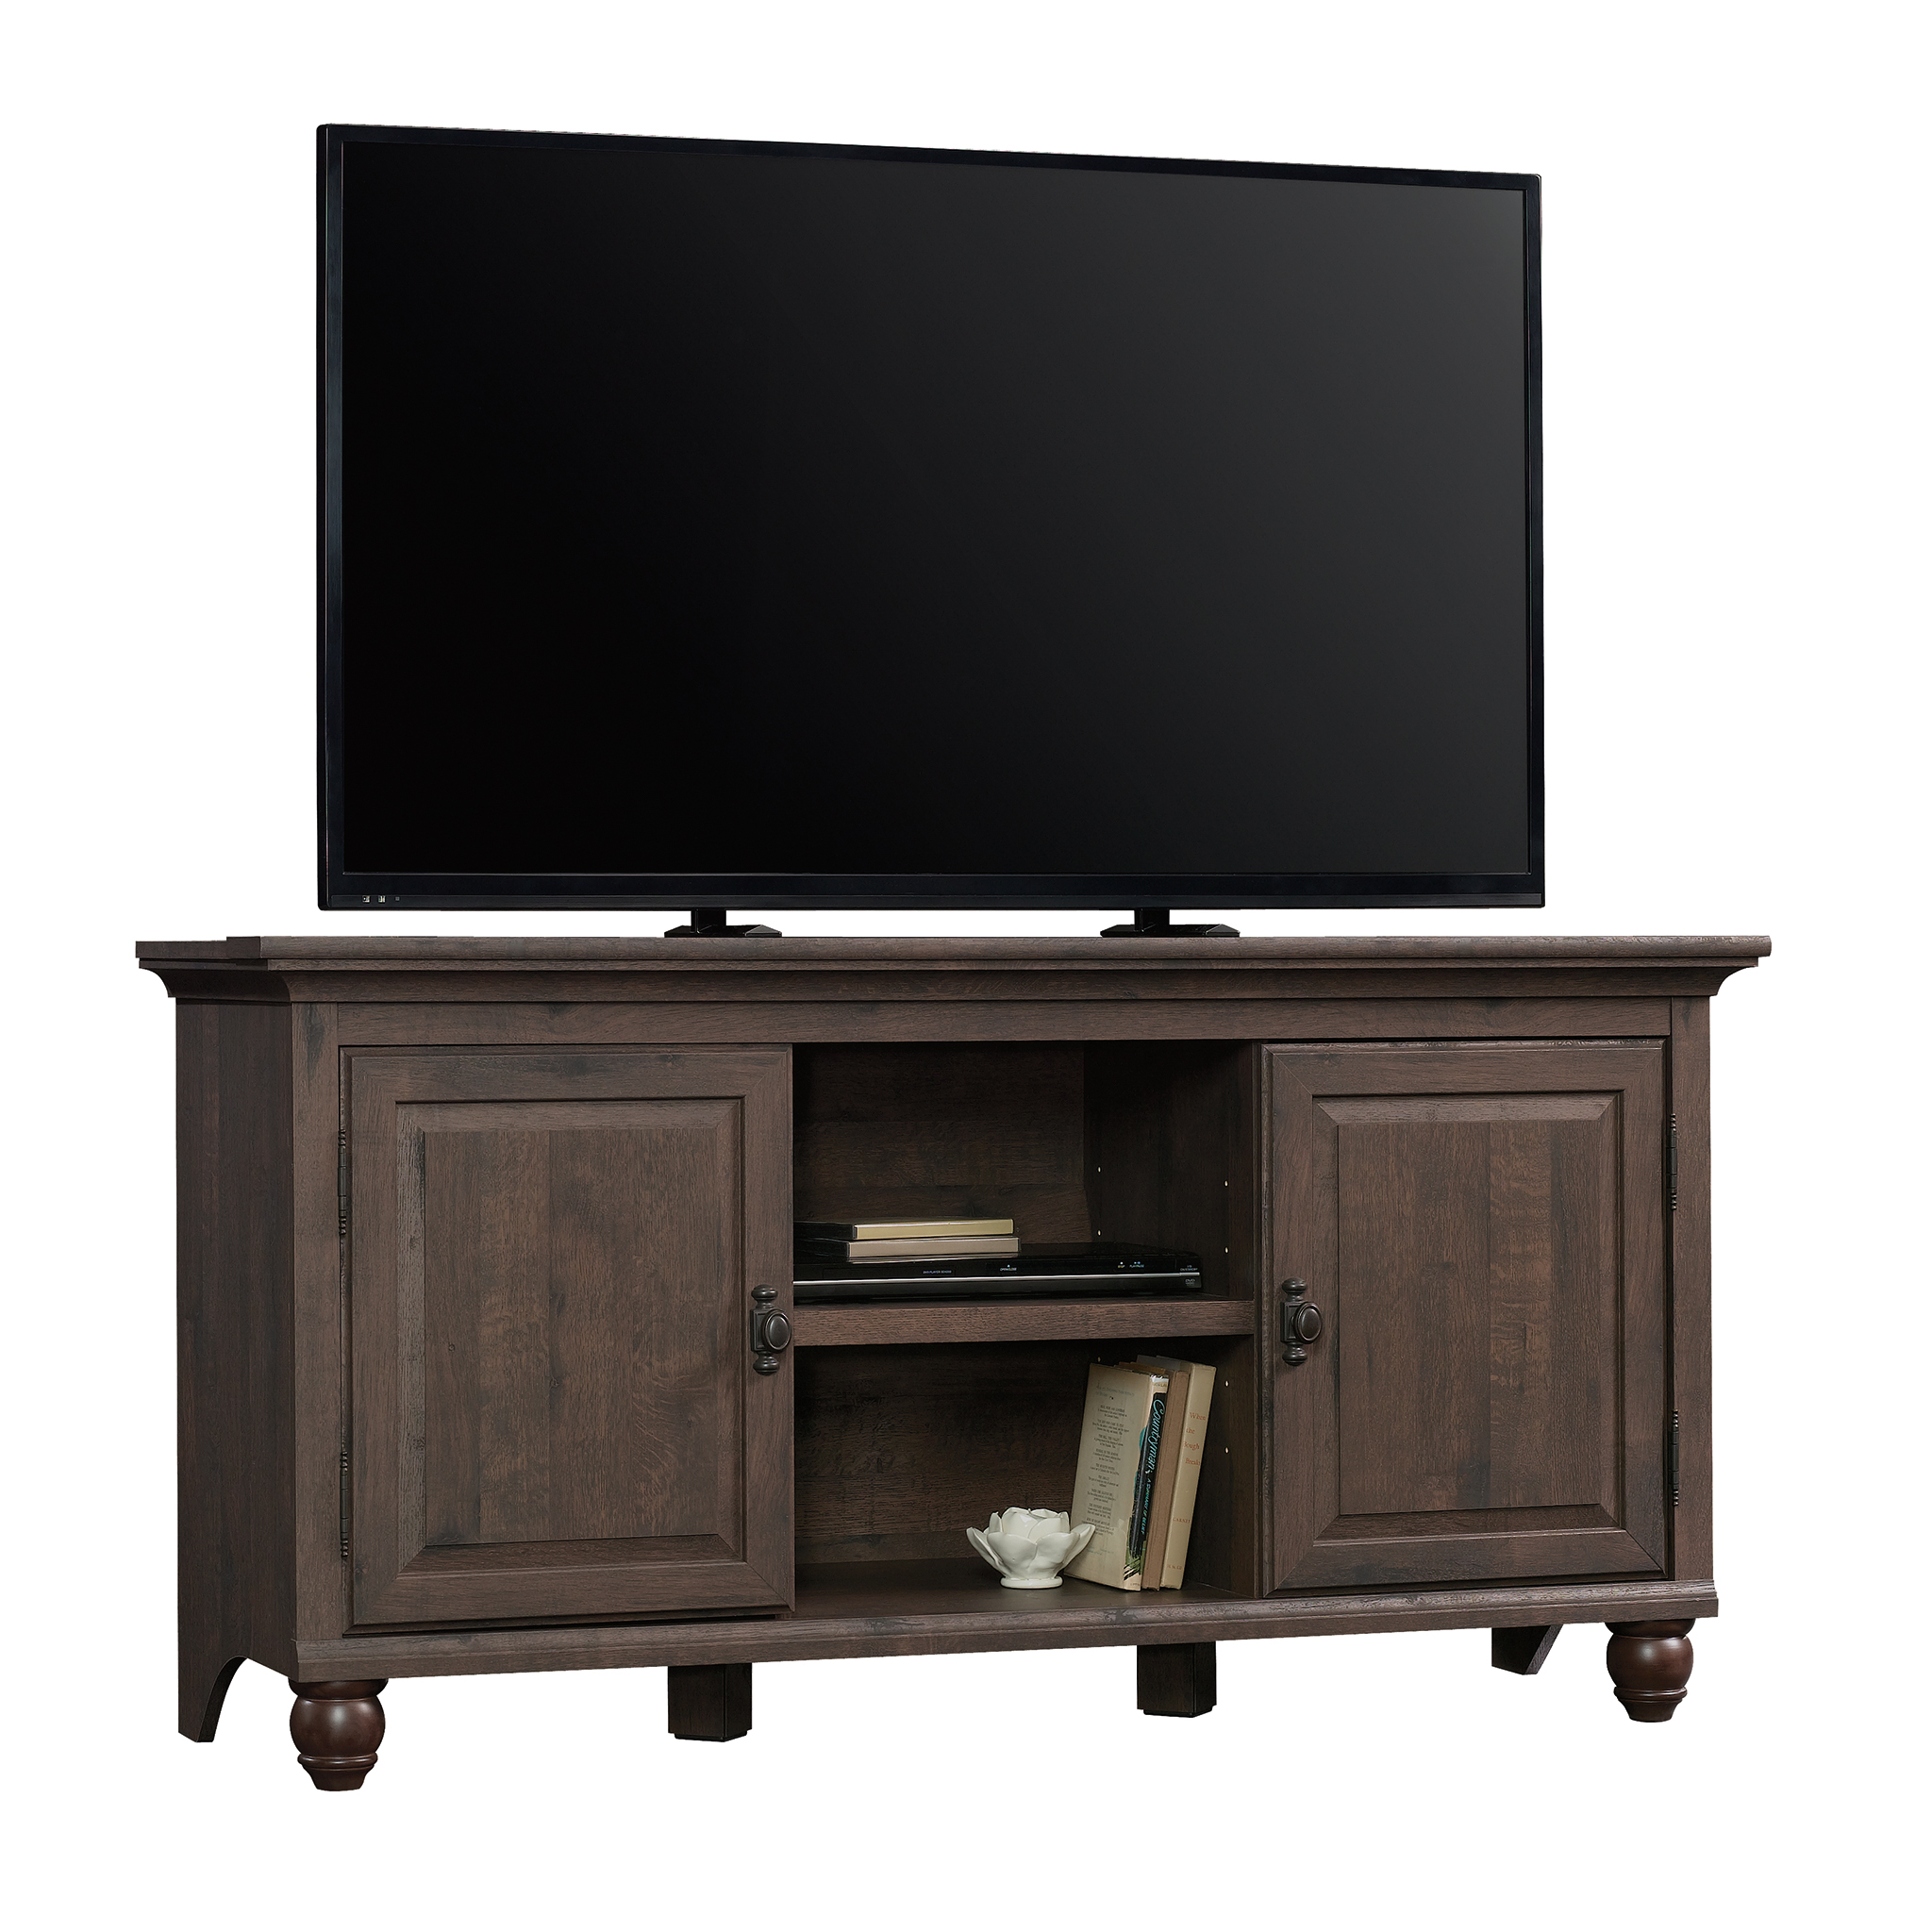 Better Homes and Gardens Crossmill Collection TV Stand & Console Cabinet for TVs up to 65\ by Sauder Woodworking